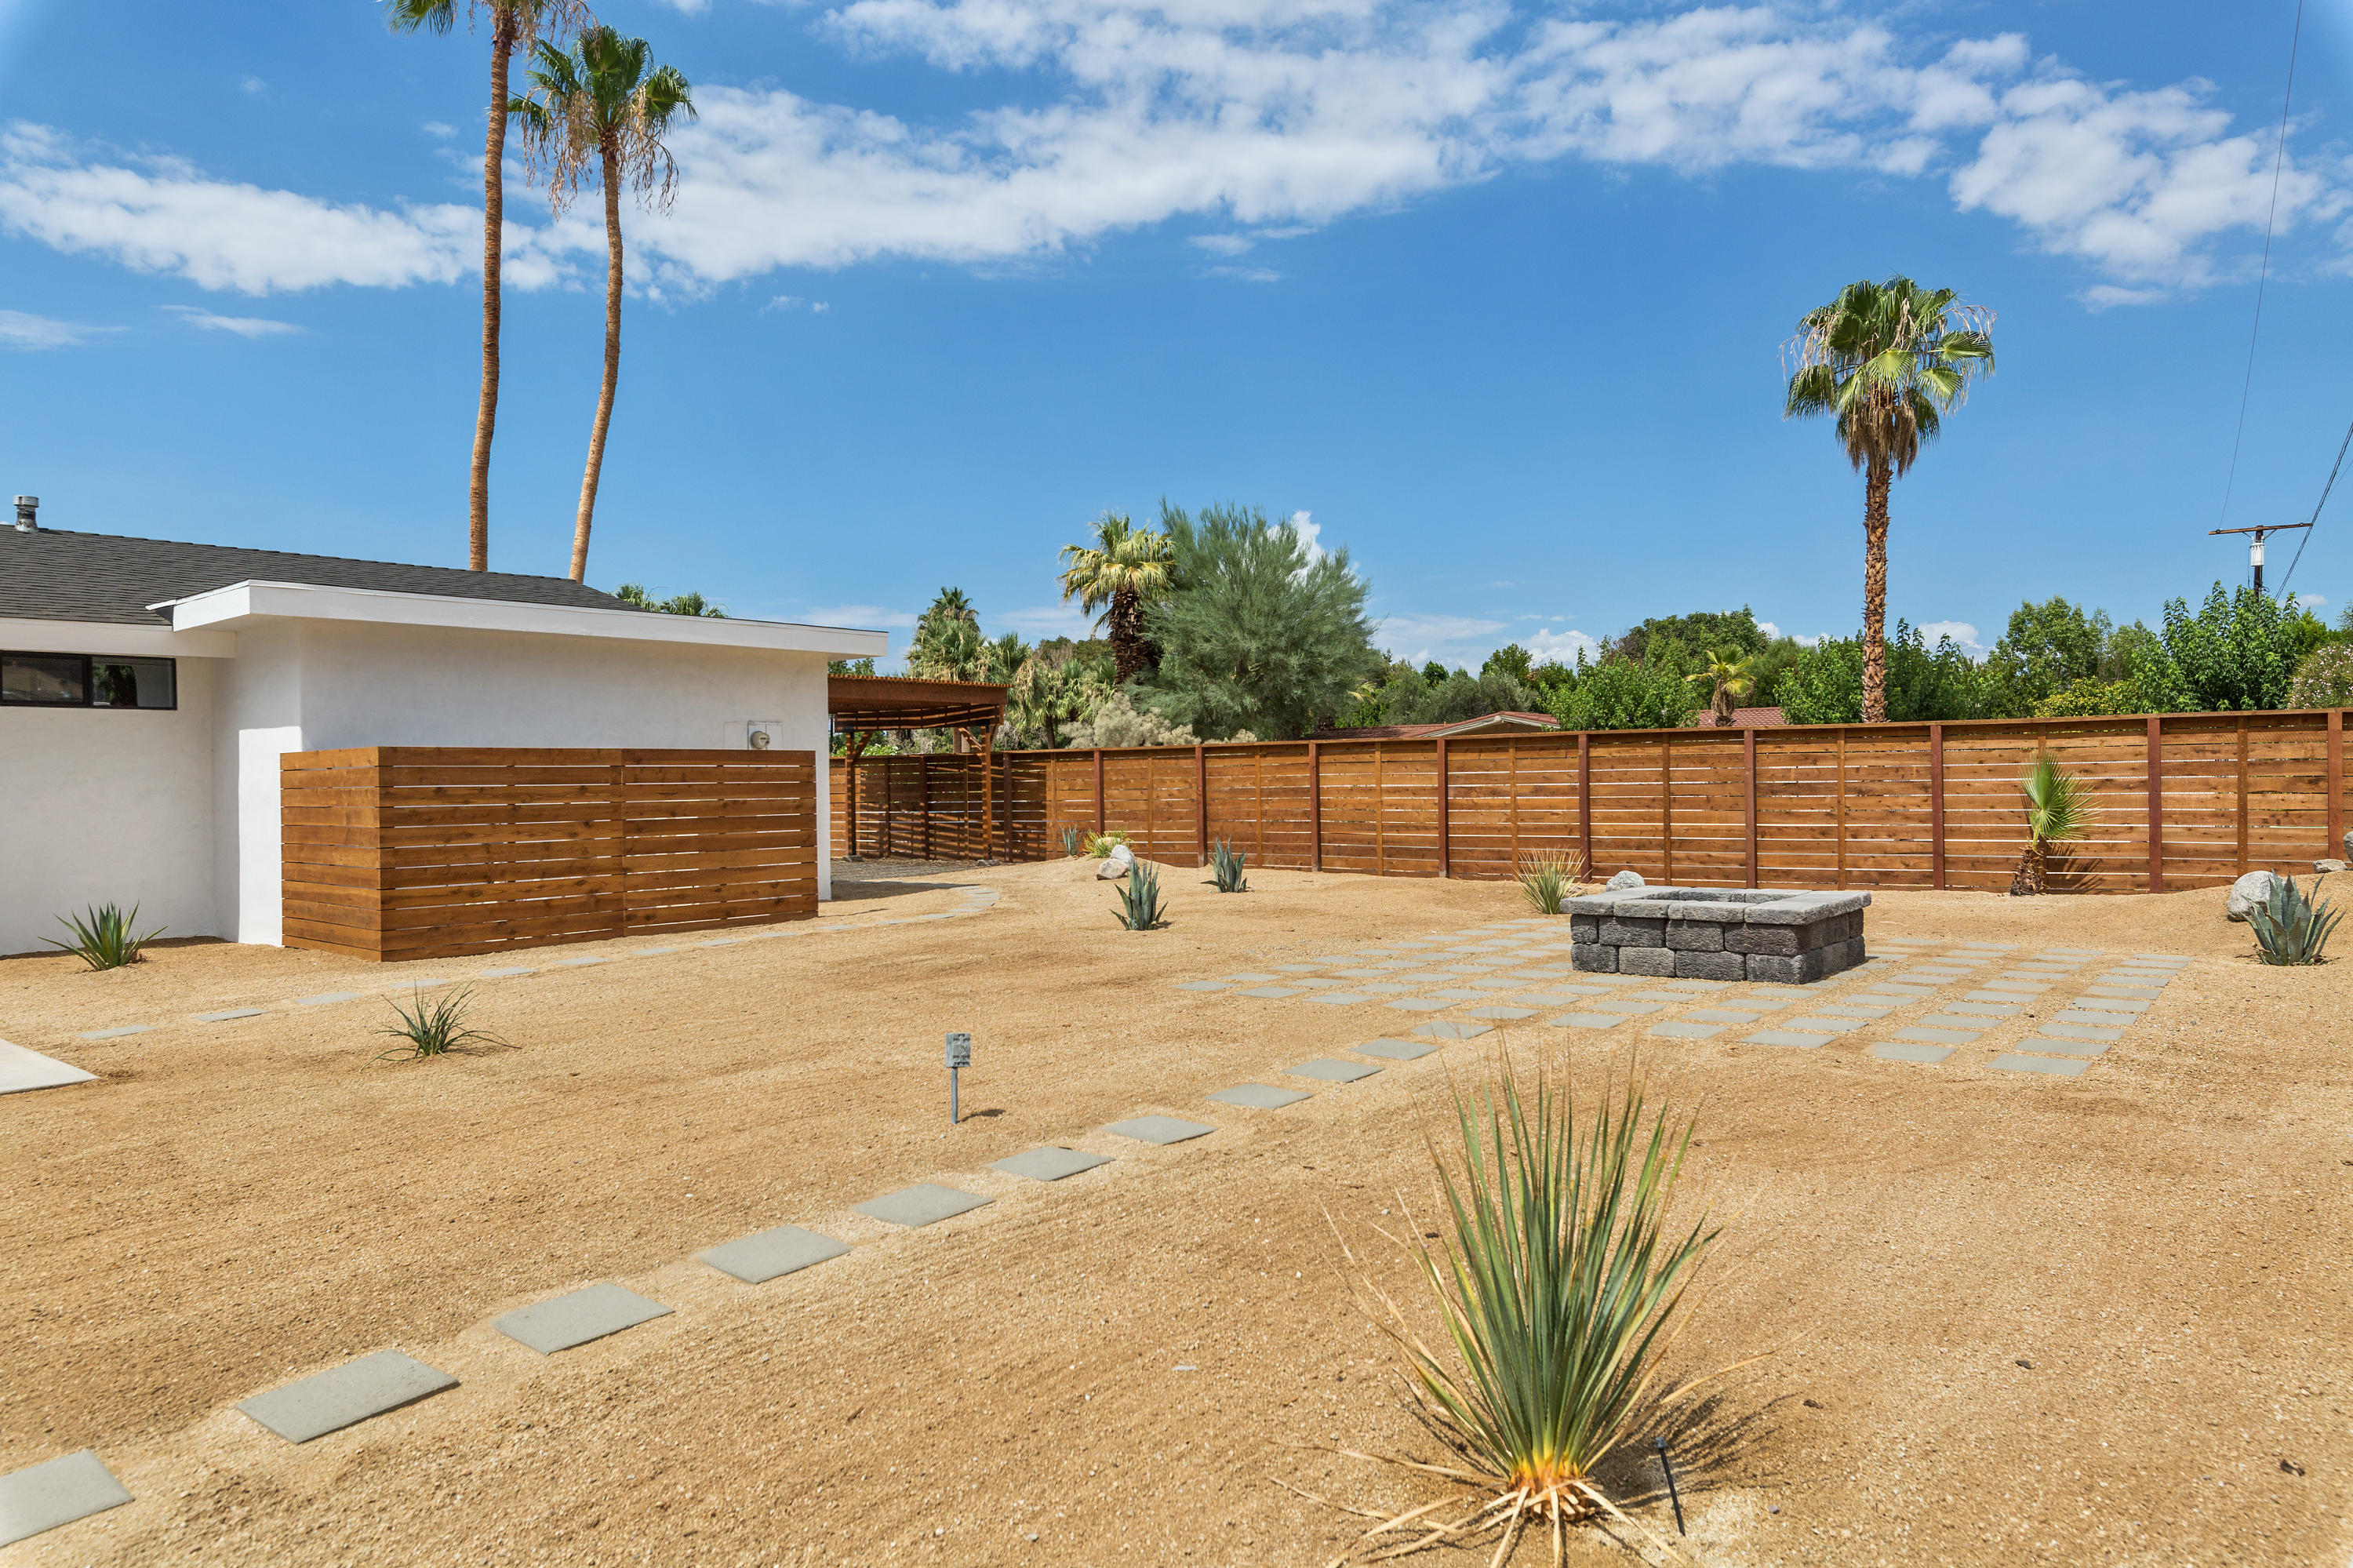 74125 Setting Sun Trail, Palm Desert, California 92260, 4 Bedrooms Bedrooms, ,3 BathroomsBathrooms,Residential,For Sale,74125 Setting Sun Trail,219031023